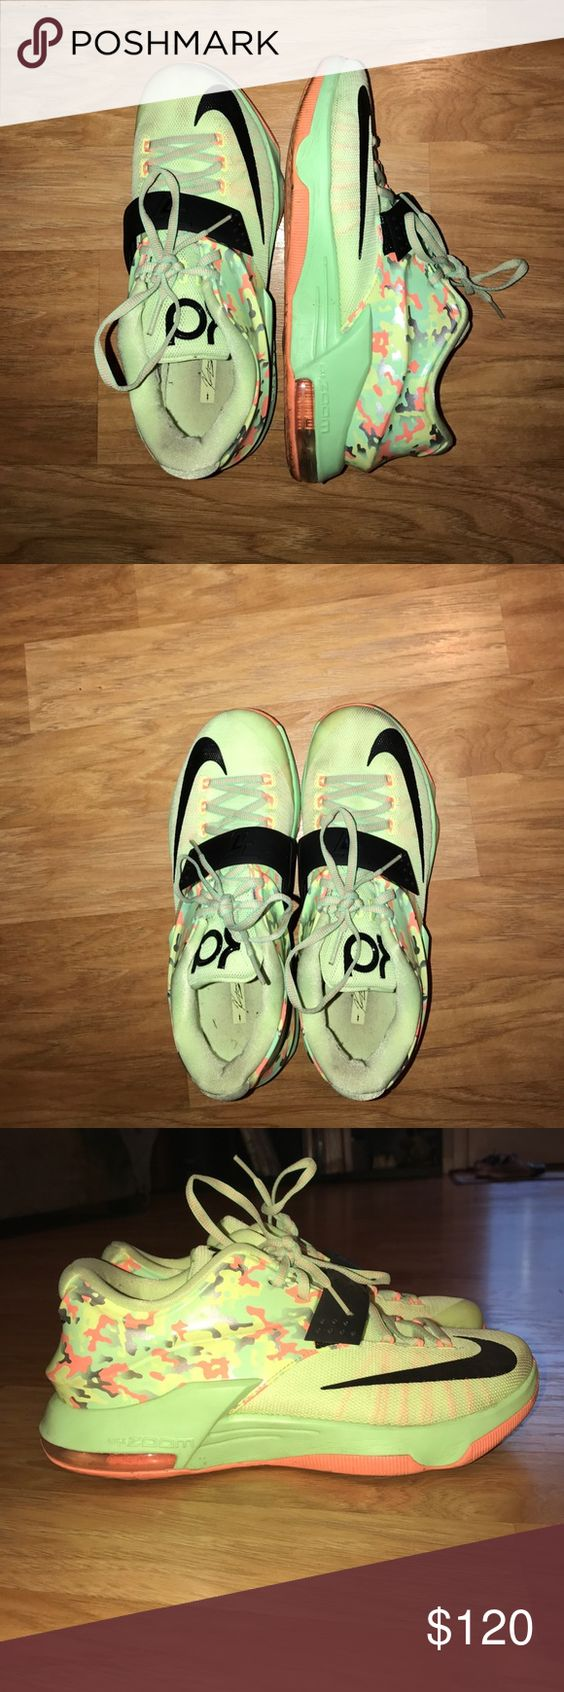 Nike zooms Basketball low tops, lightly worn, one stain at tip of the shoe but can be cleaned. Nike Shoes Athletic Shoes